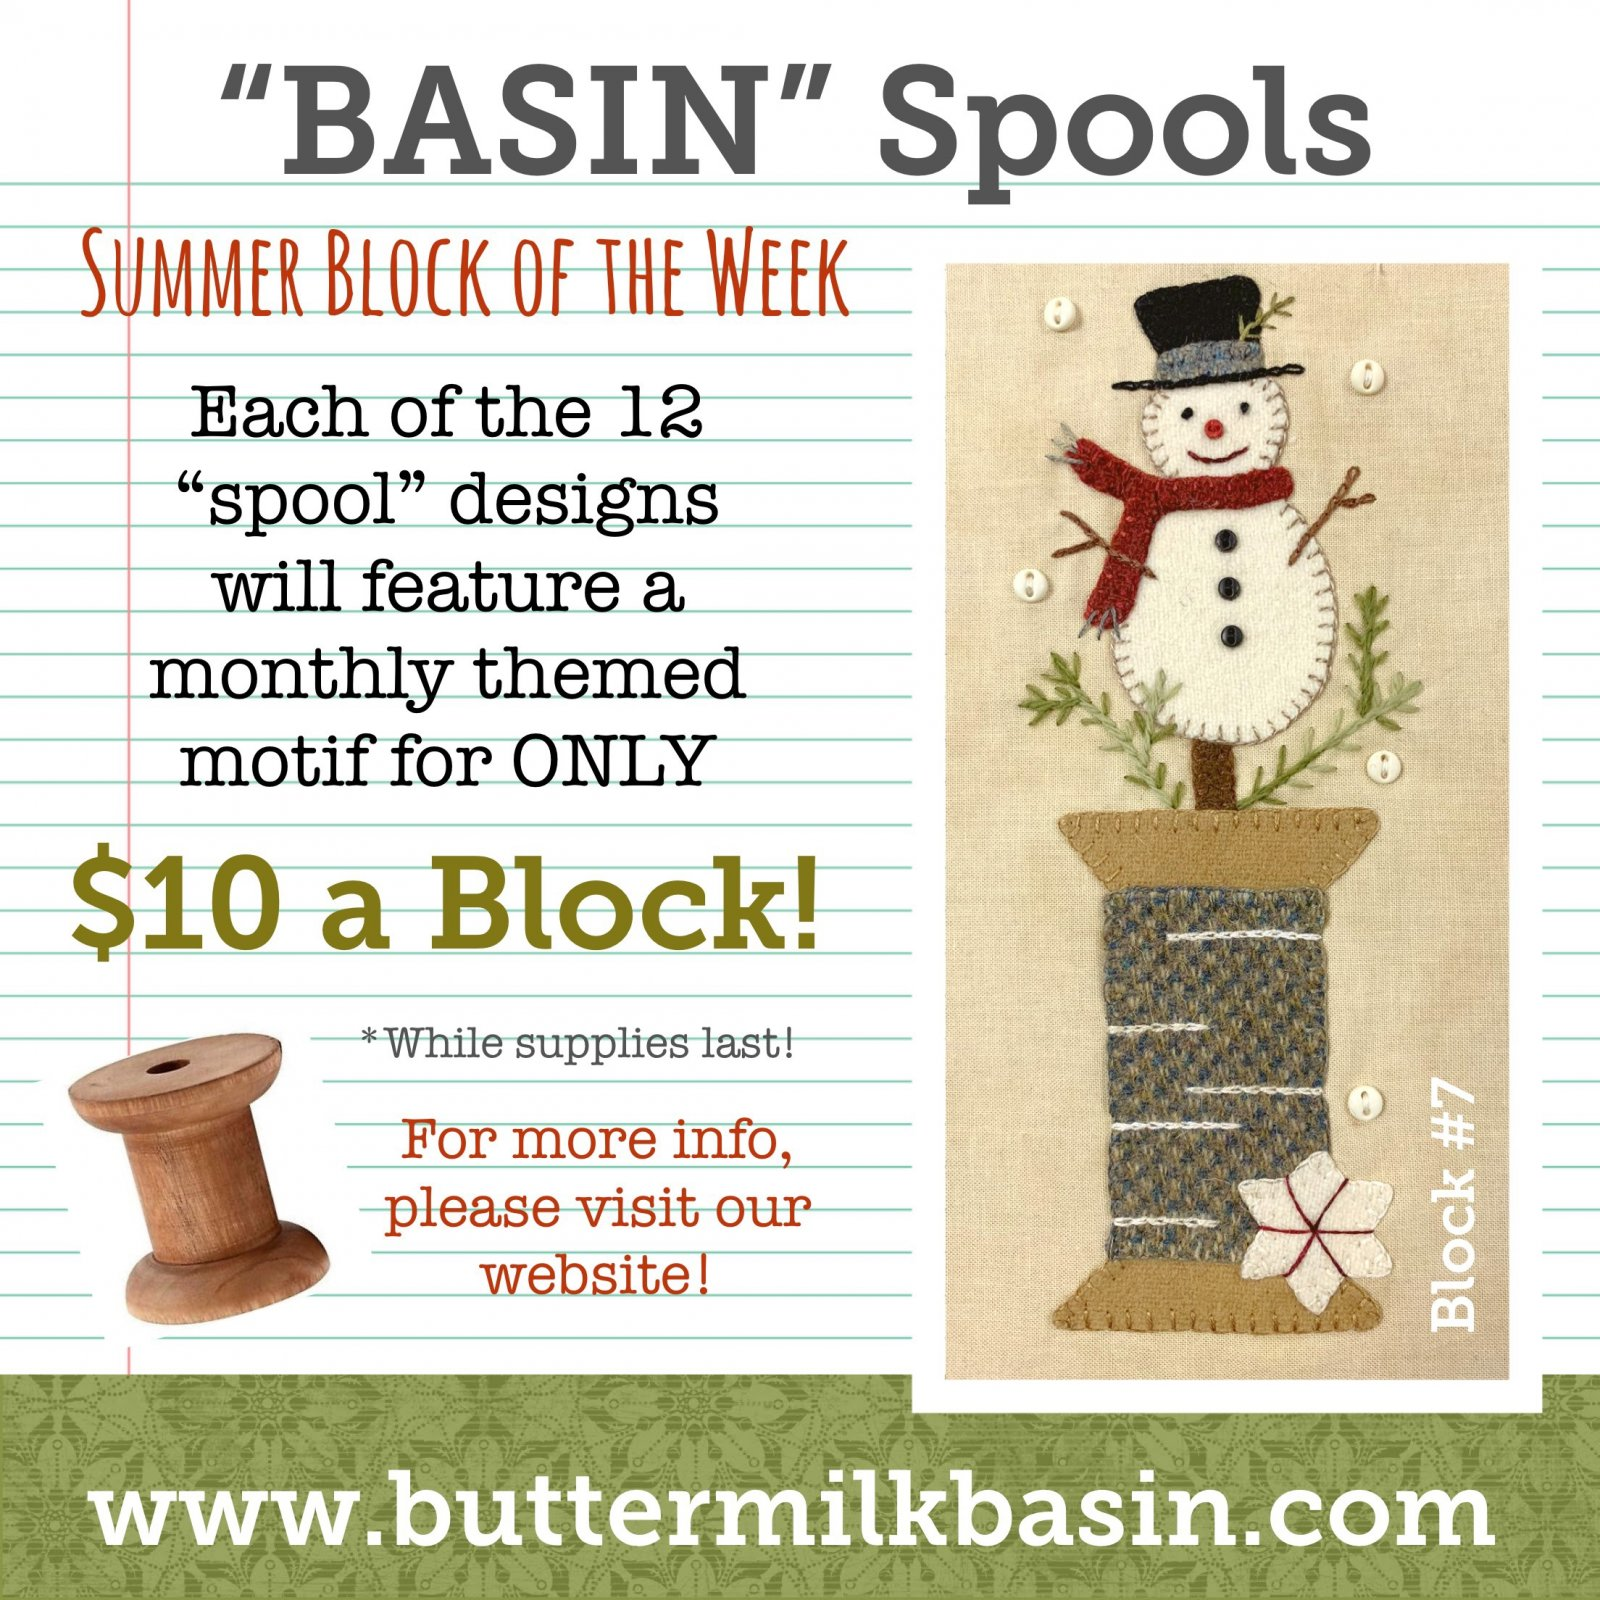 BASIN Spools! Summer Block of the Week! * Blocks 7 Kit & Pattern